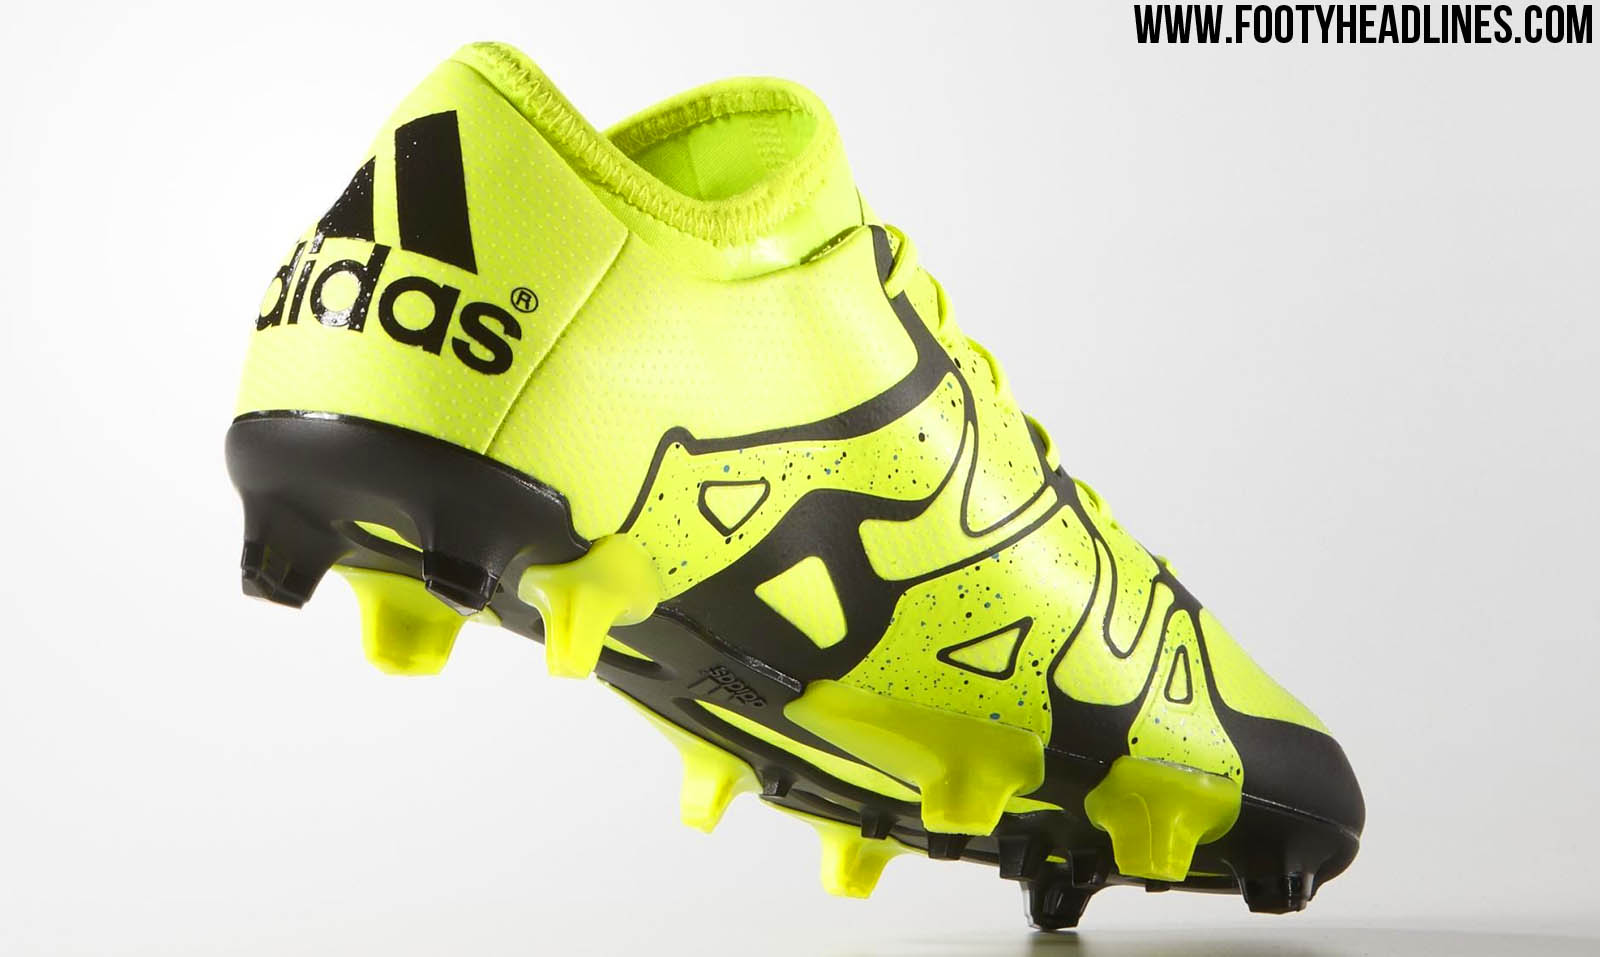 new adidas x 2015 boots released footy headlines